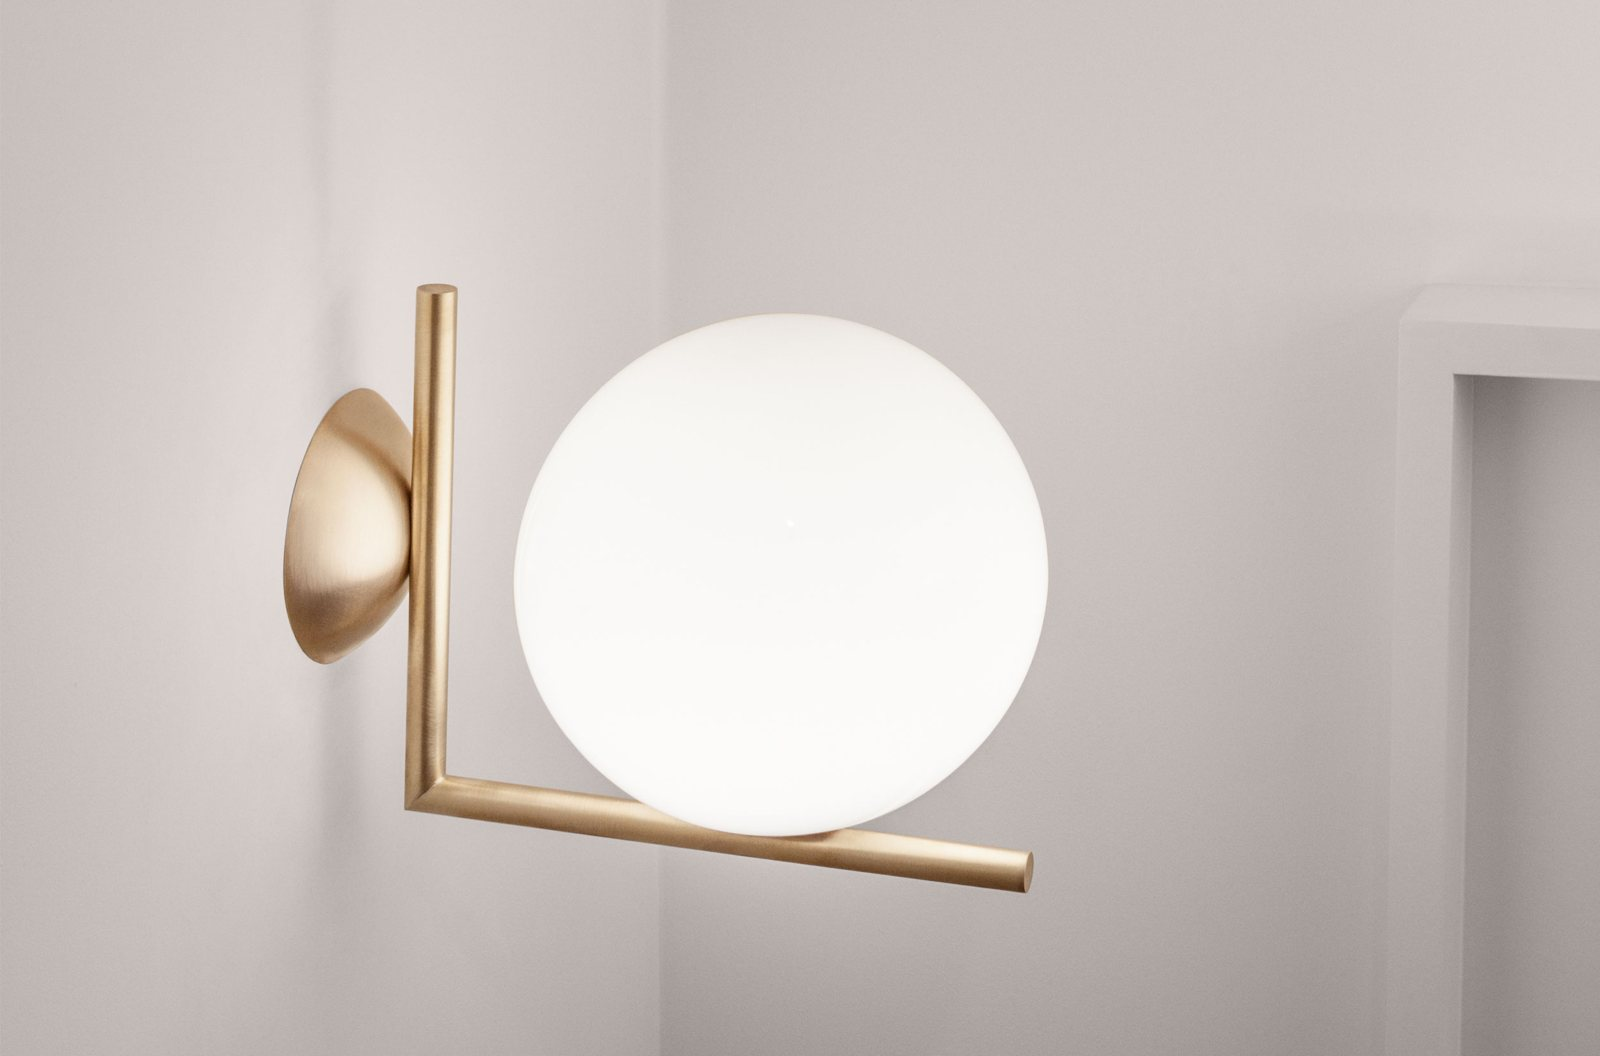 Ic lights c w by michael anastassiades for flos up interiors - Ic lights flos ...